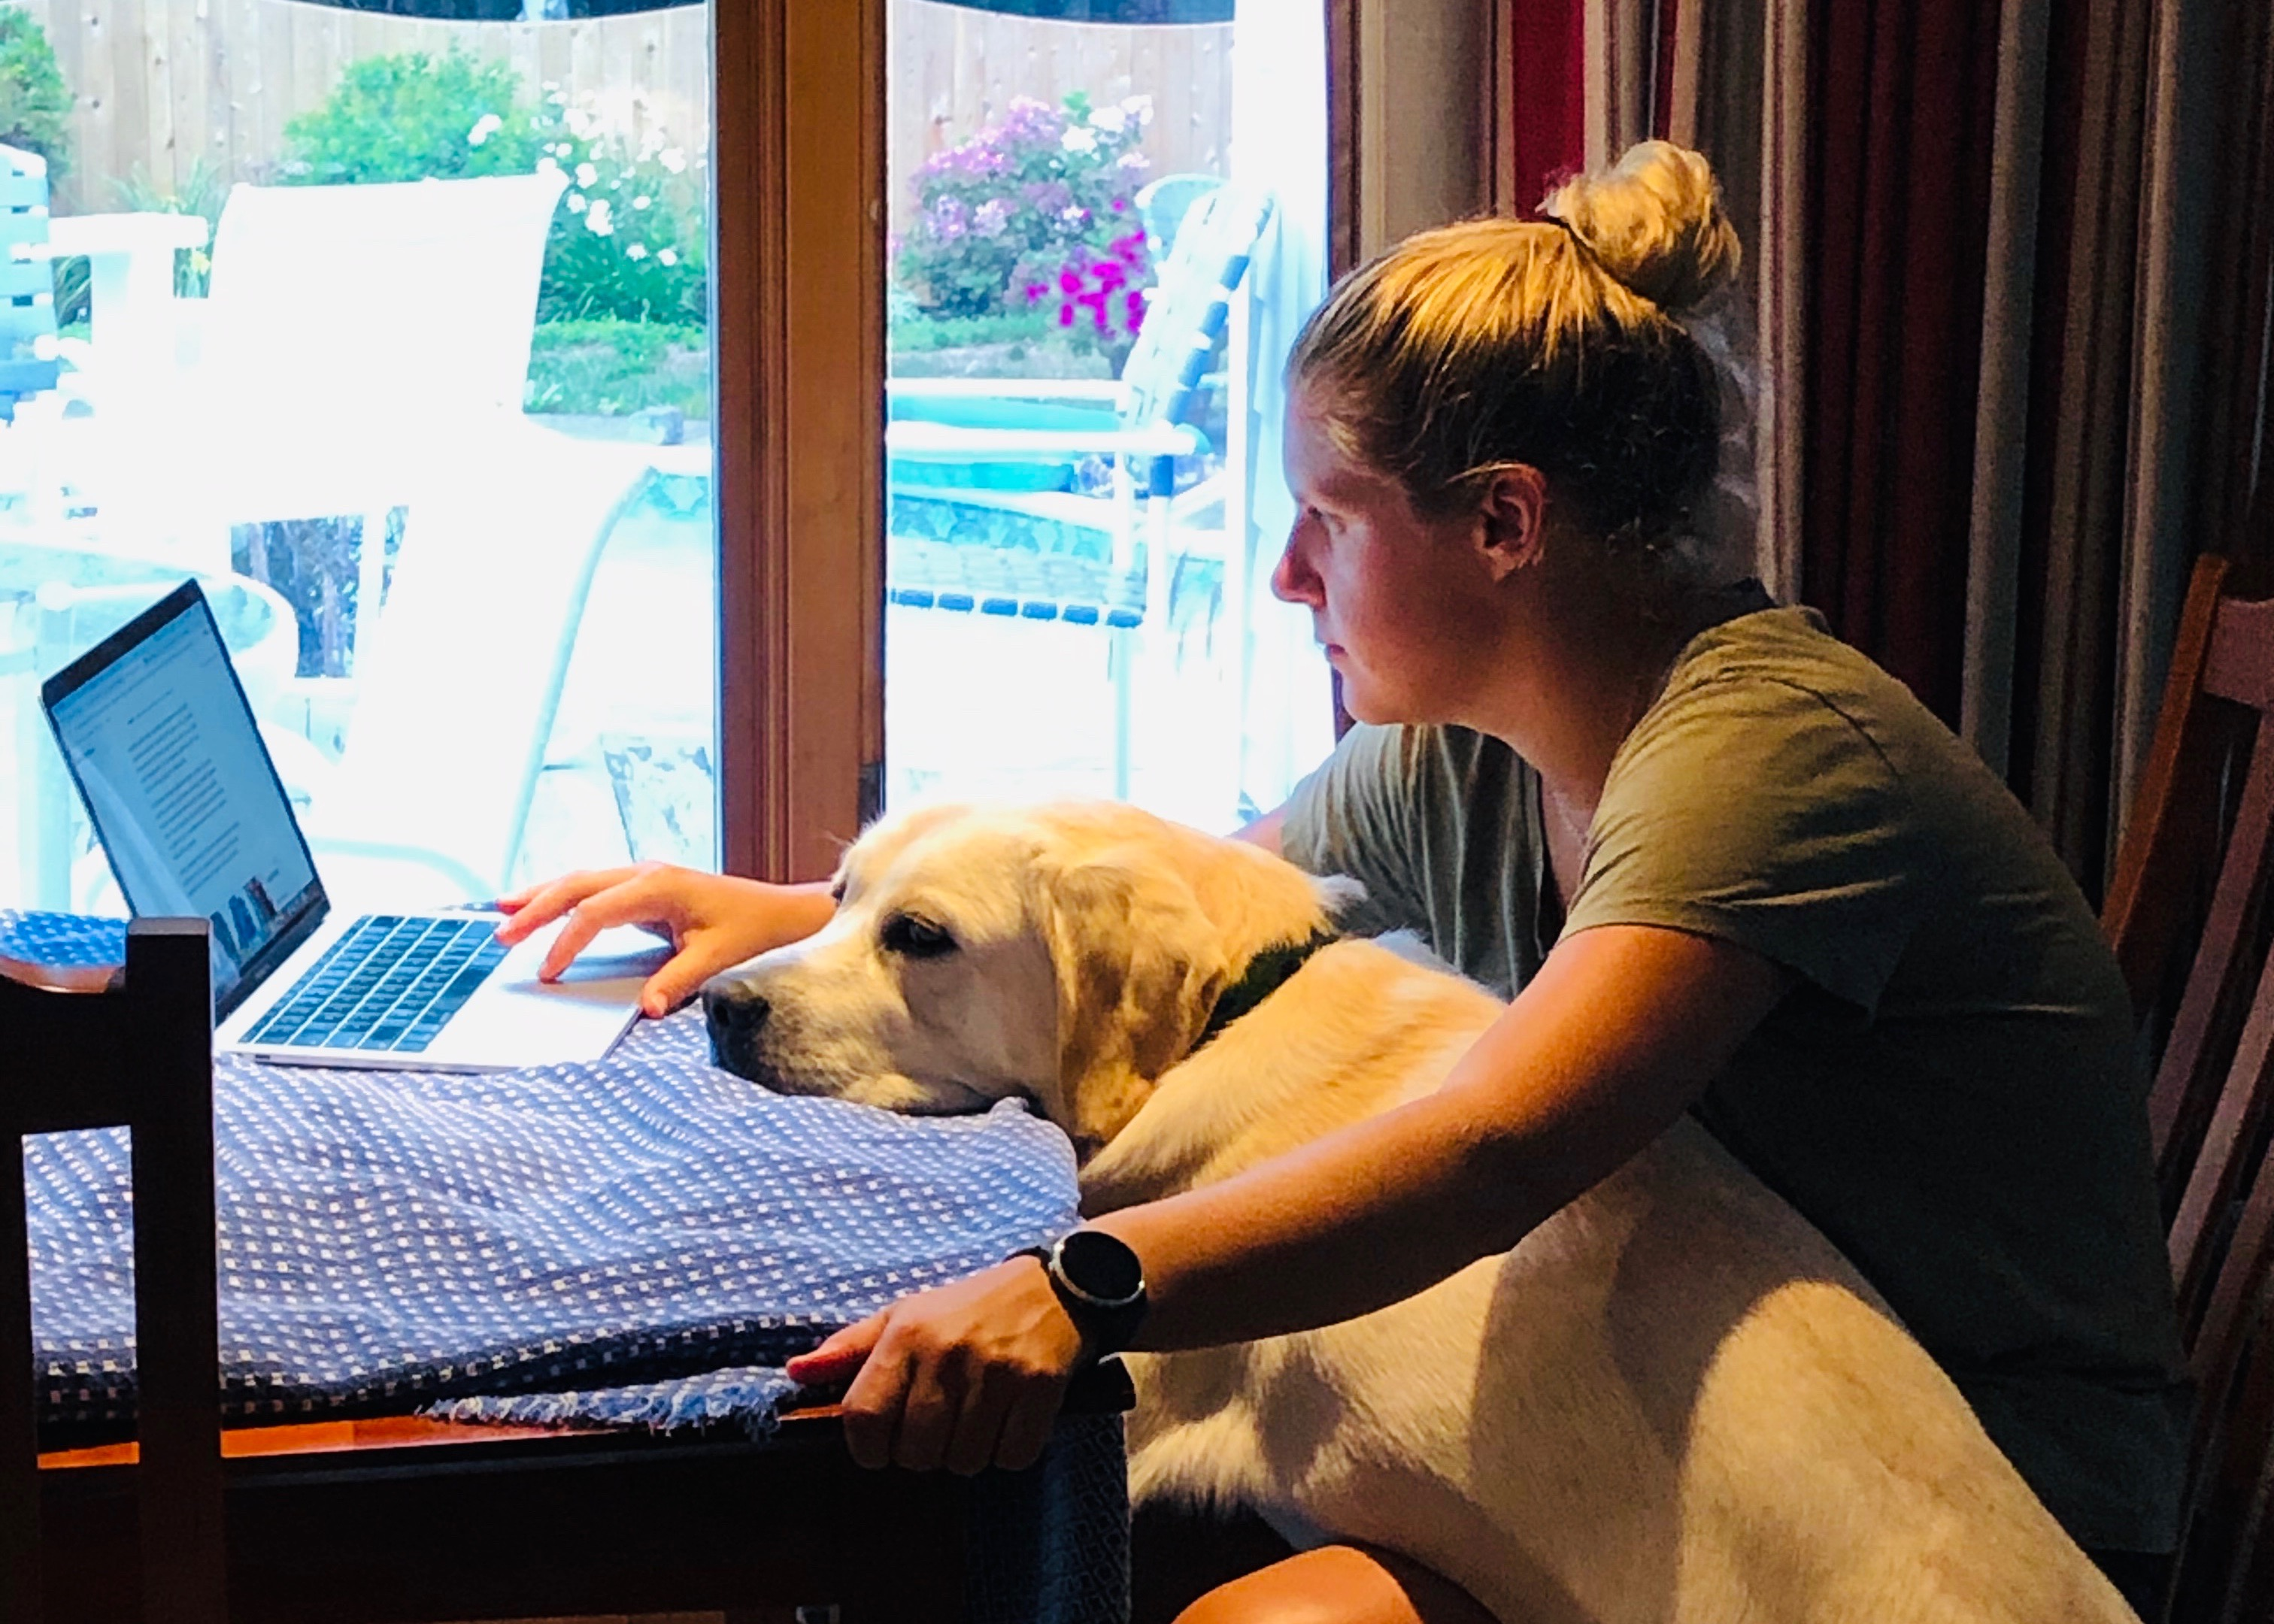 Working from home with a dog